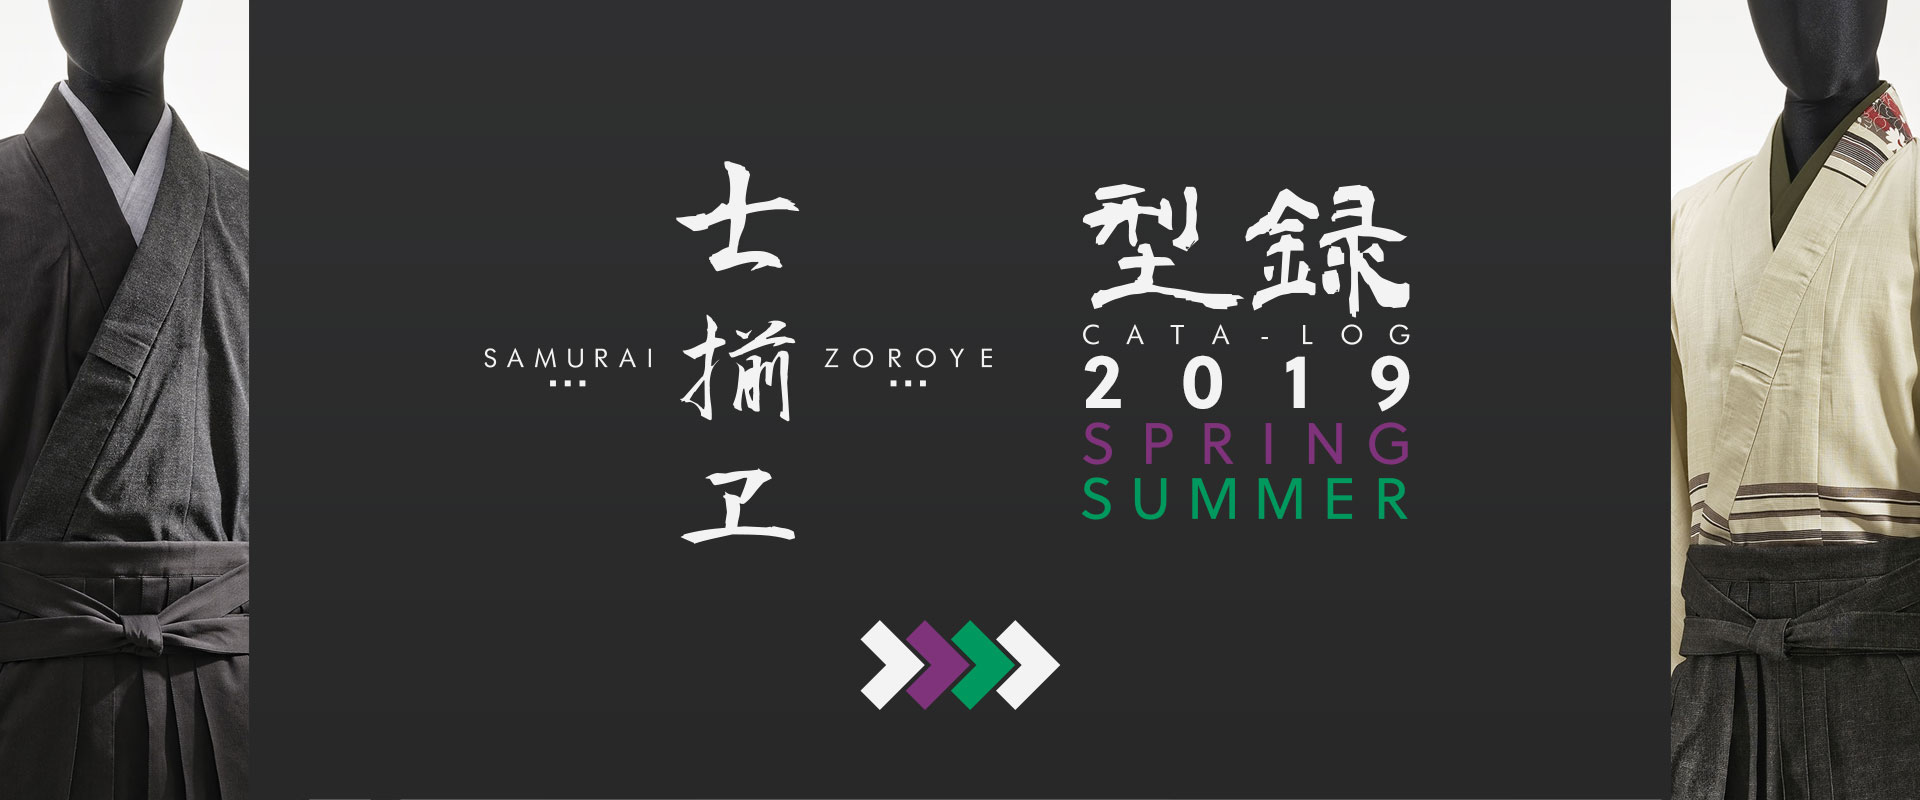 [PHOTO:SAMURAI ZOROYE CATALOG '19 SPRING / SUMMER]